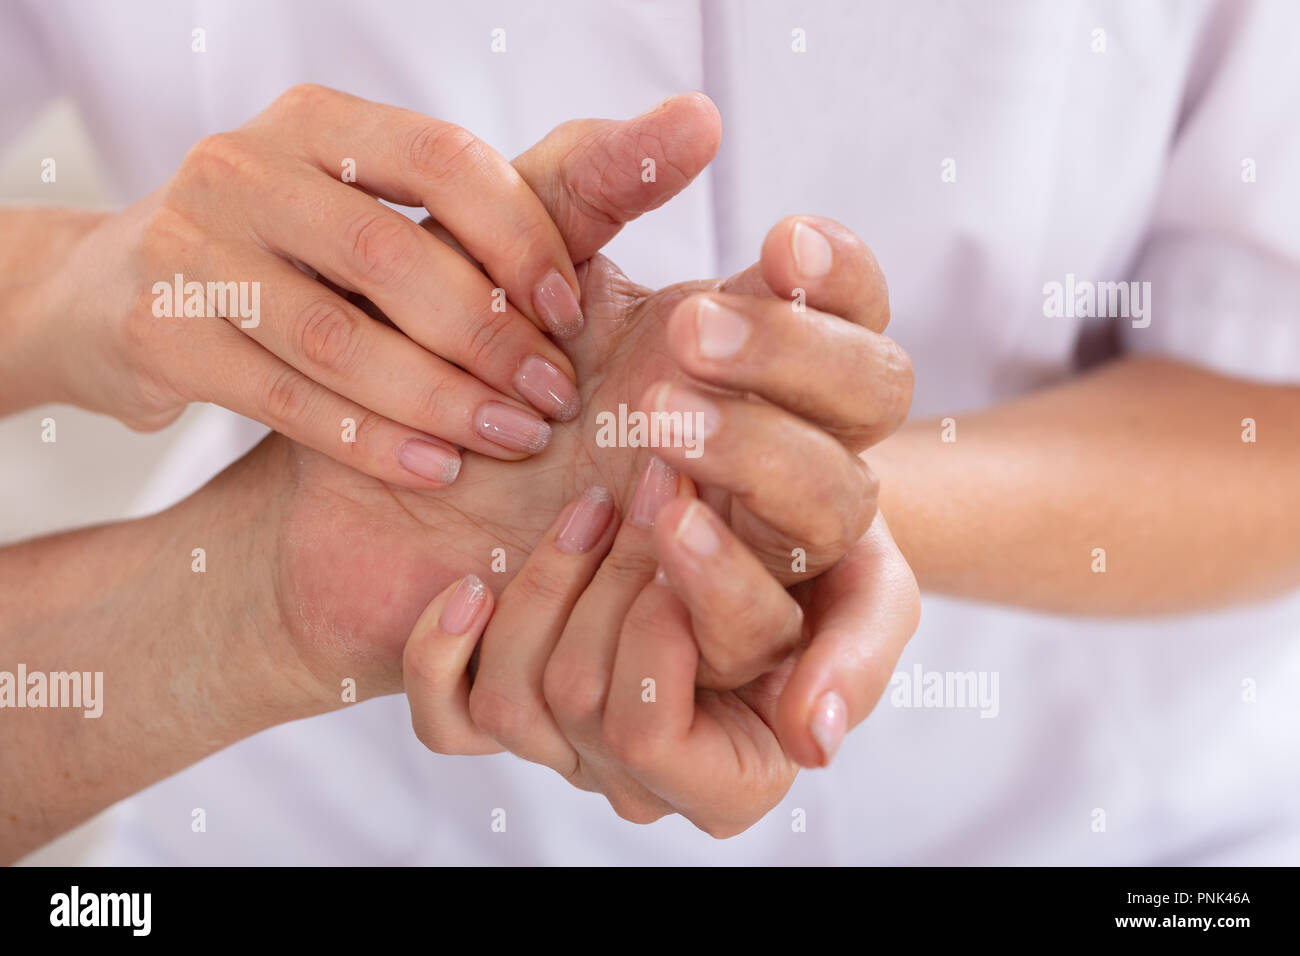 Close-up Of A Female Doctor Examining Patient's Wrist - Stock Photo